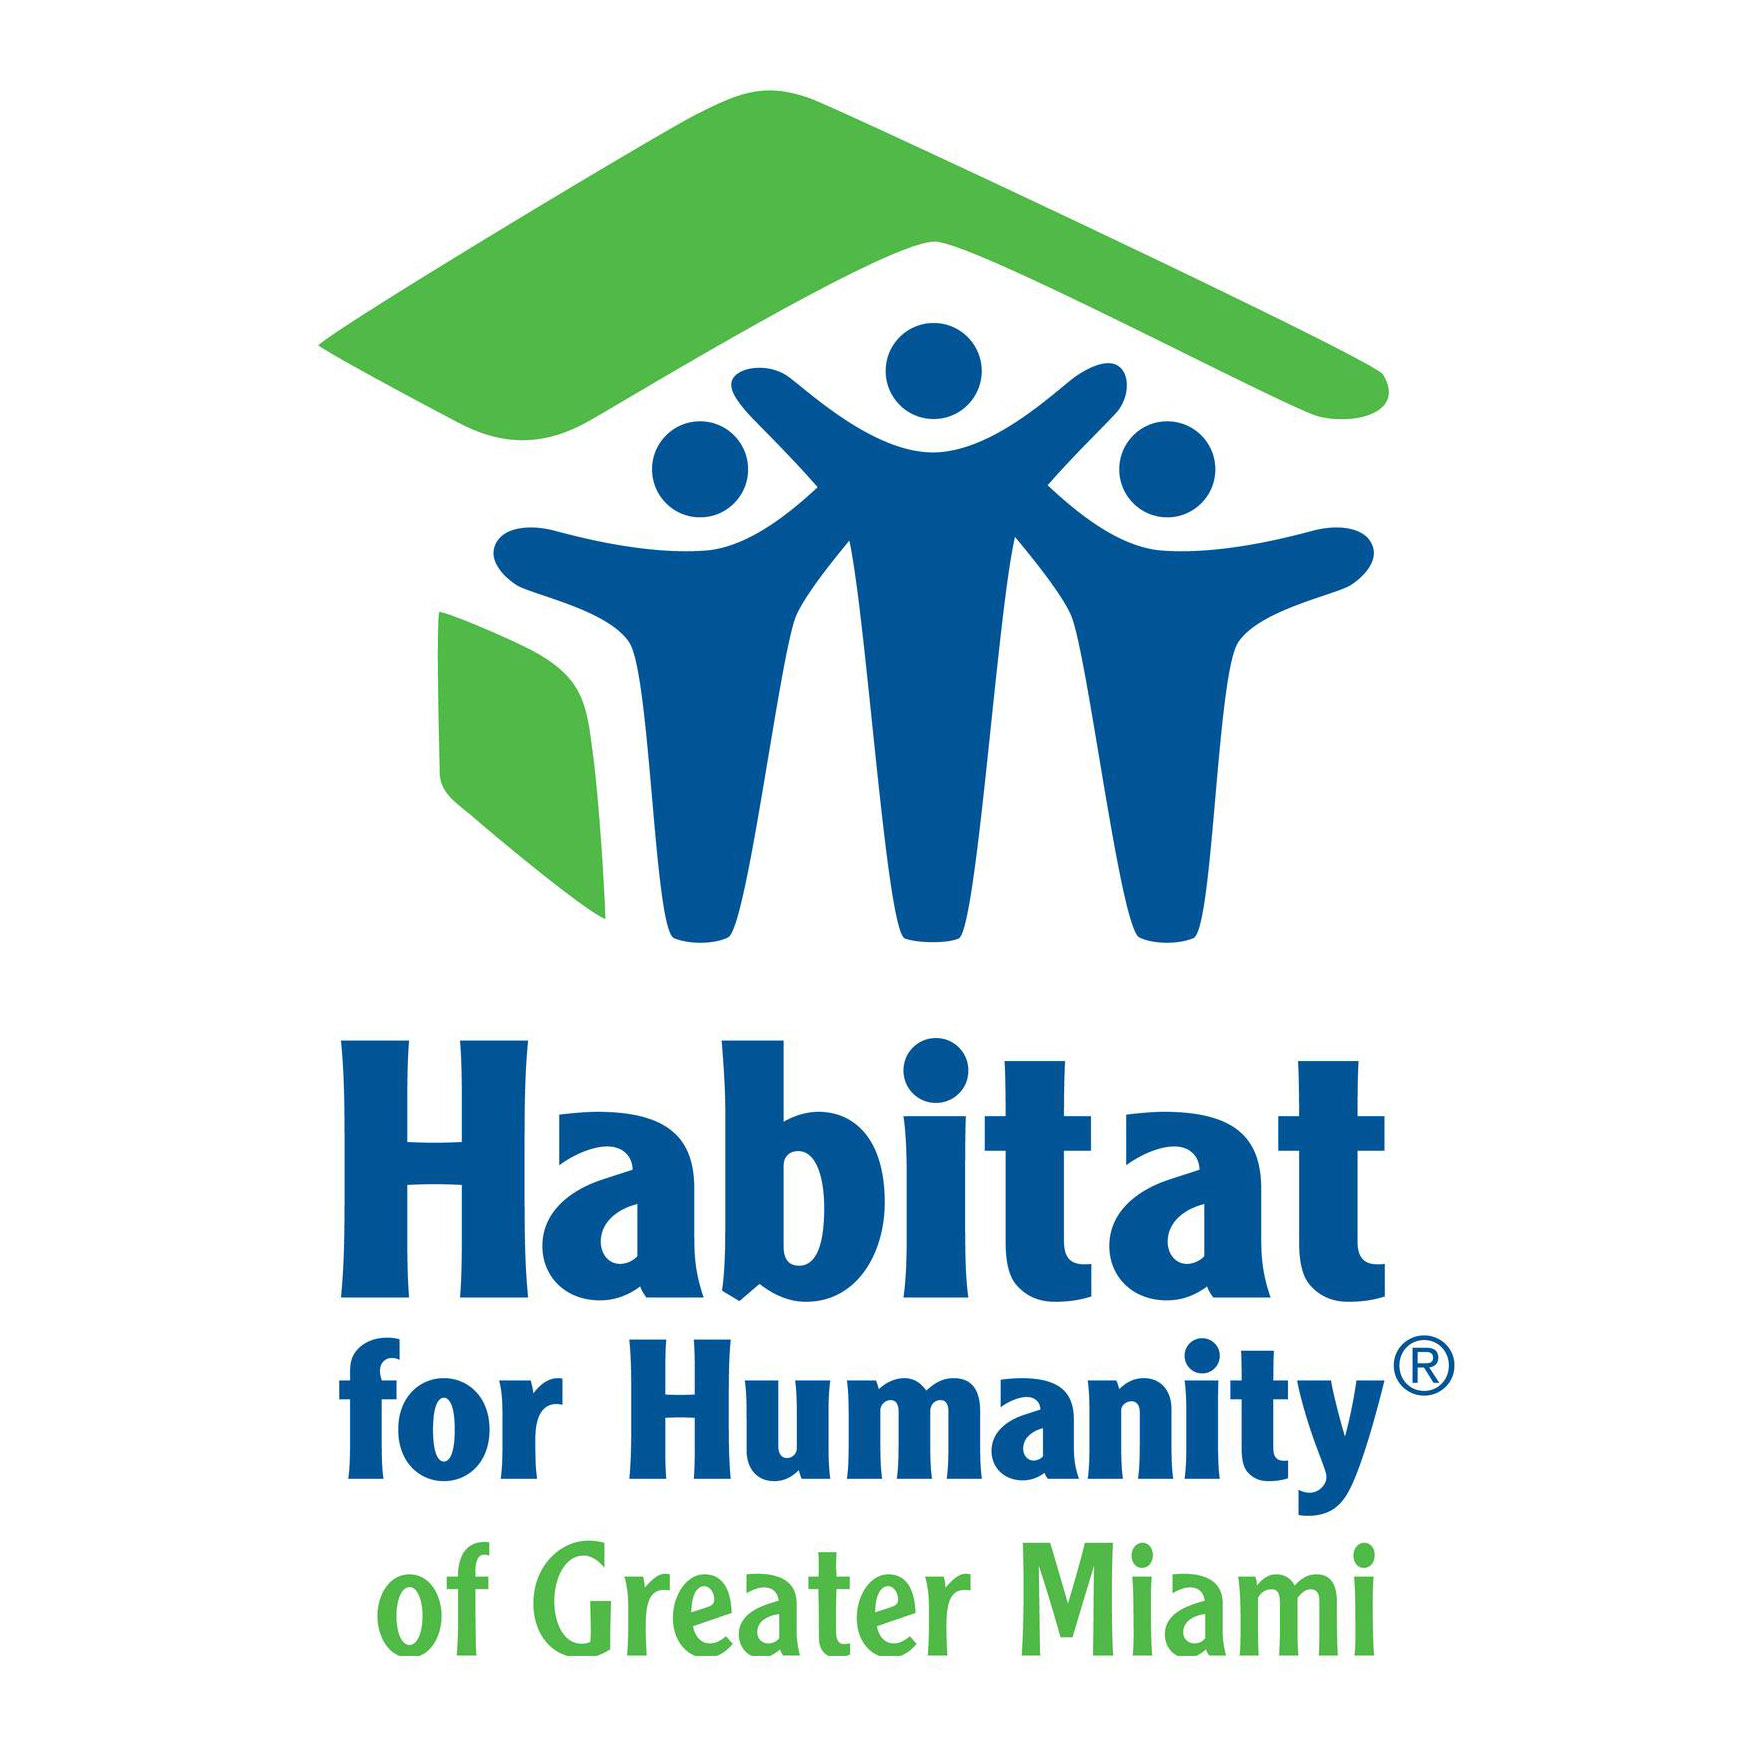 Habitat for Humanity of Greater Miami